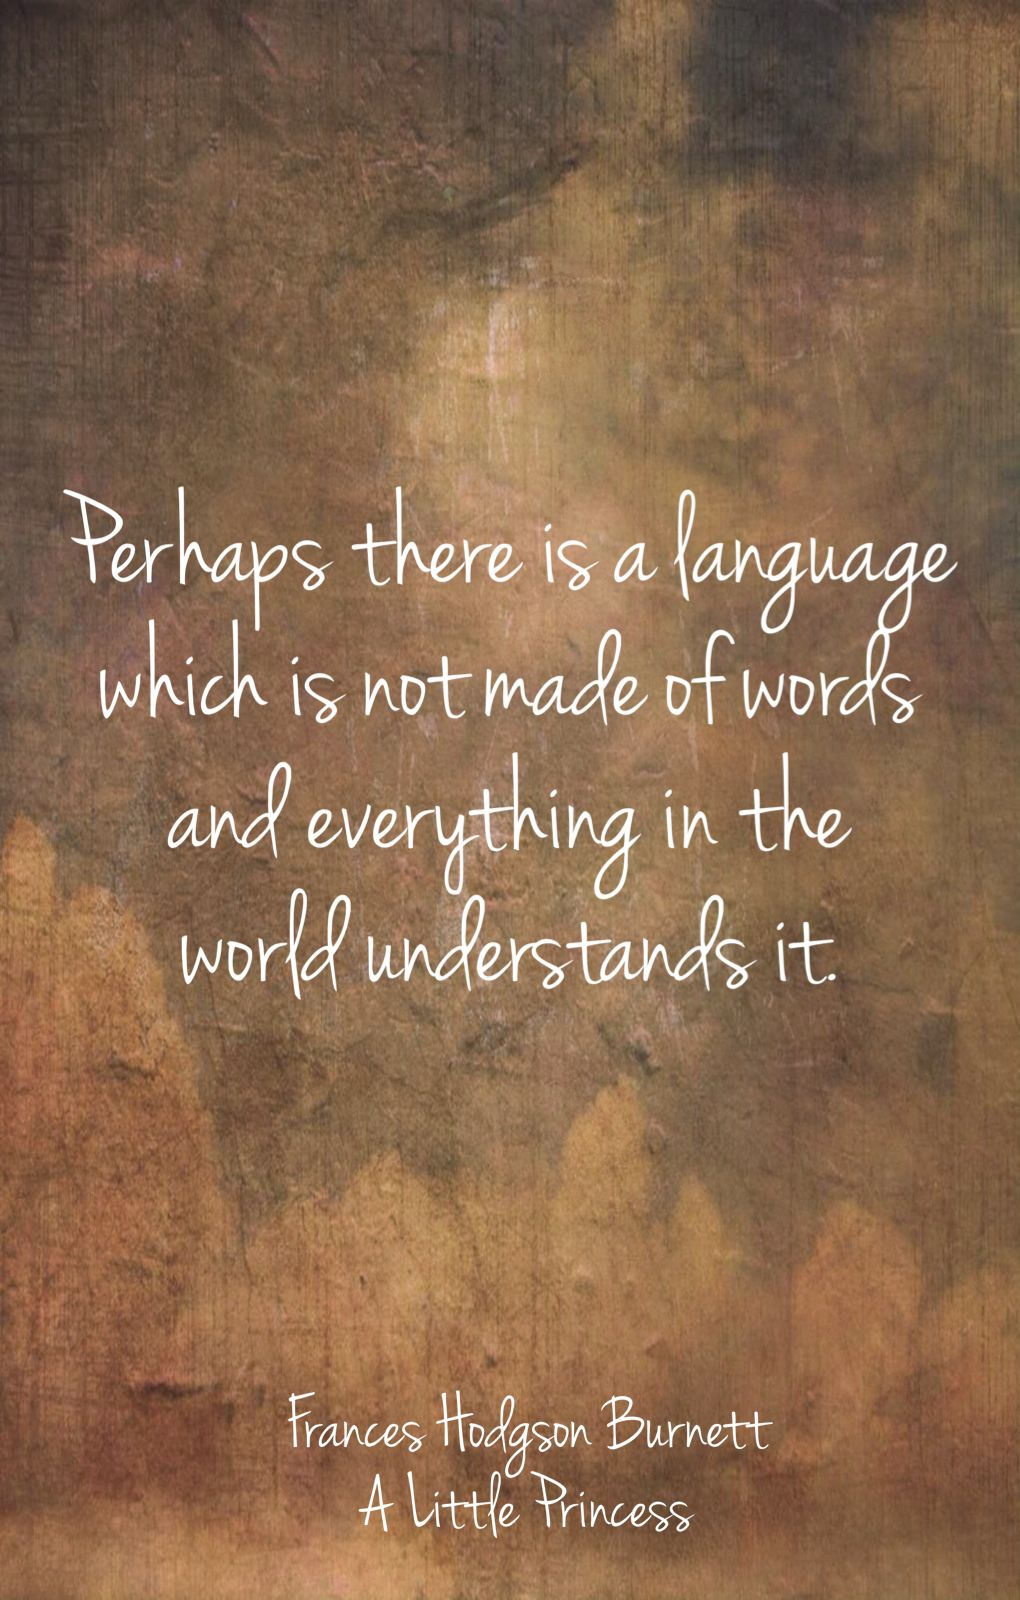 "A Little Princess quotes, Frances Hodgson Burnett wisdom...""Perhaps there is a language which is not made of words..."""